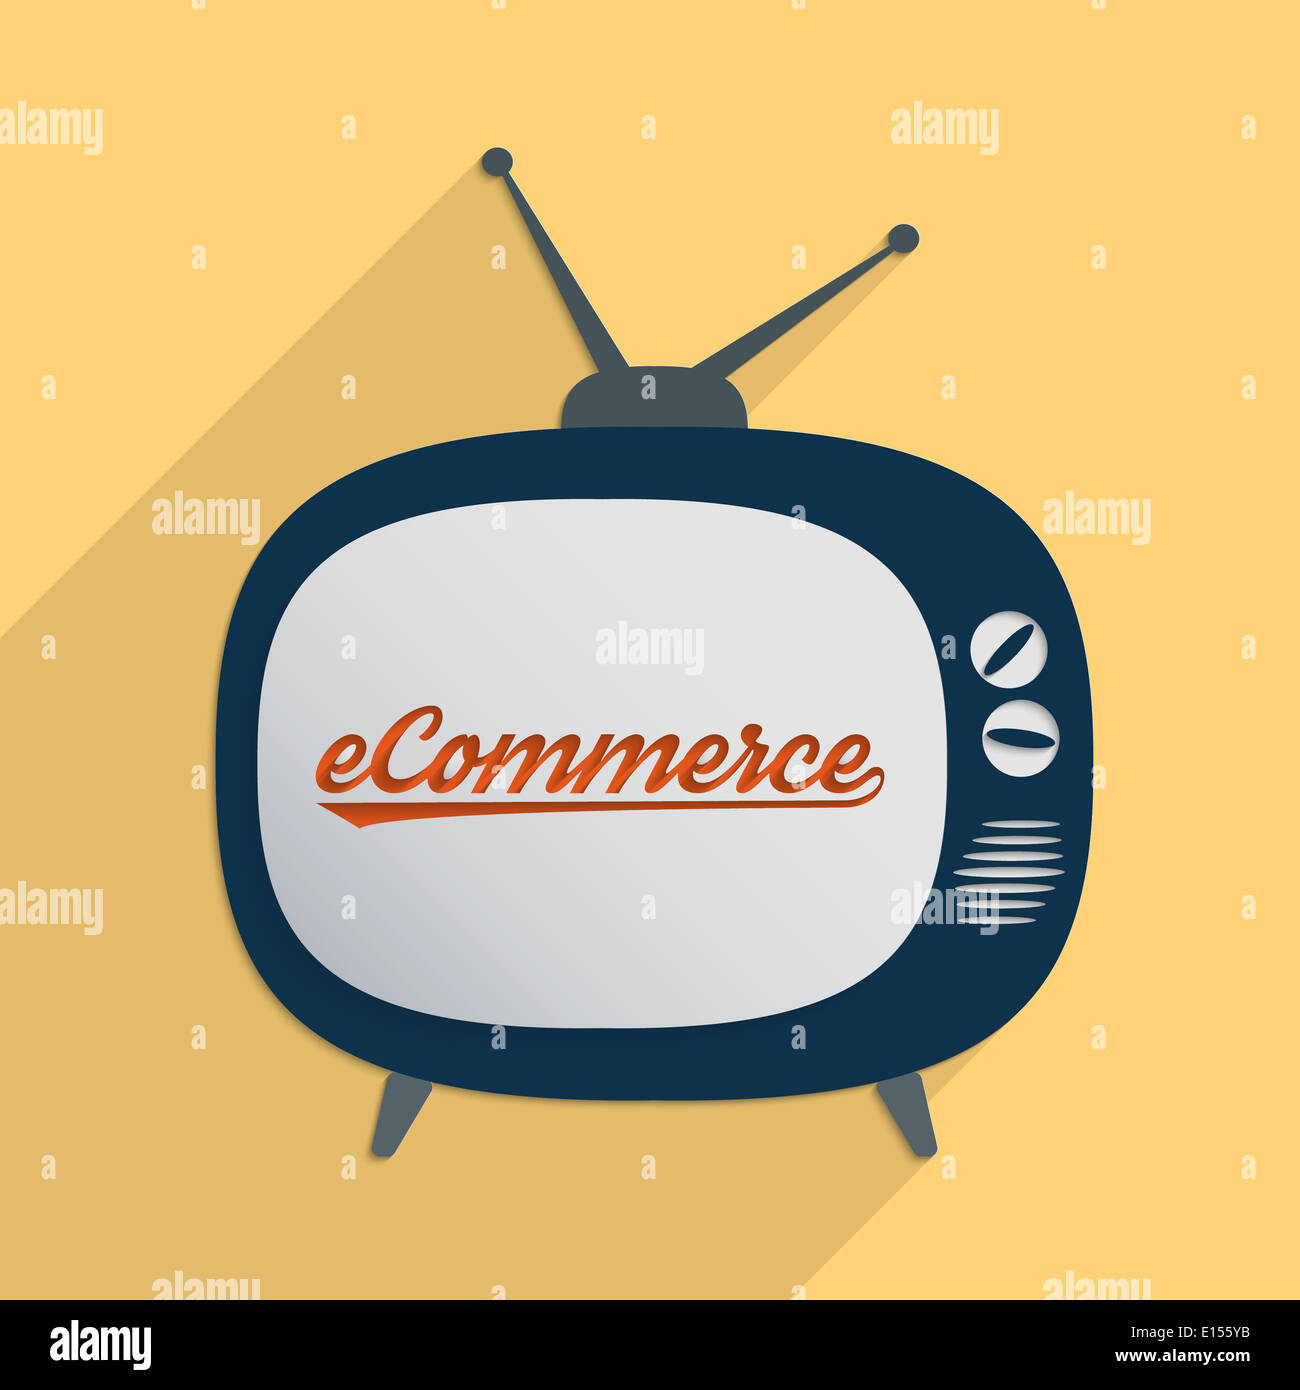 Trade Store Tv Stock Photos & Trade Store Tv Stock Images - Alamy